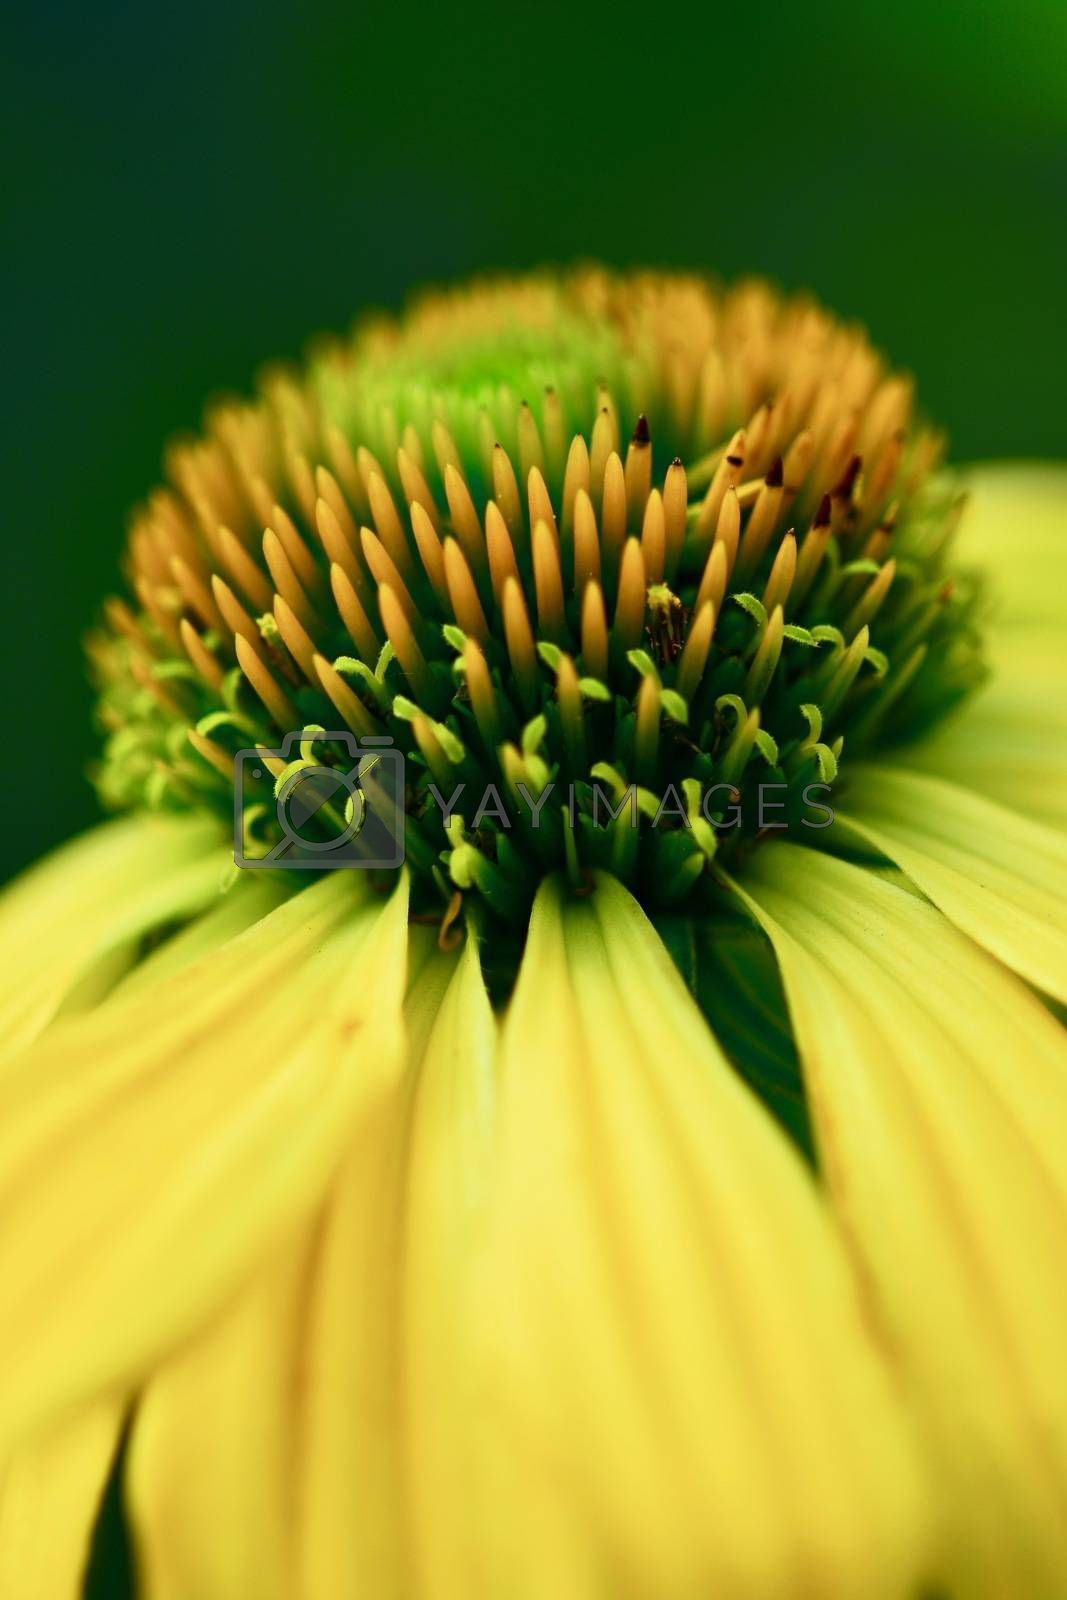 The genusEchinaceahas ten species, which are commonly calledconeflowers.